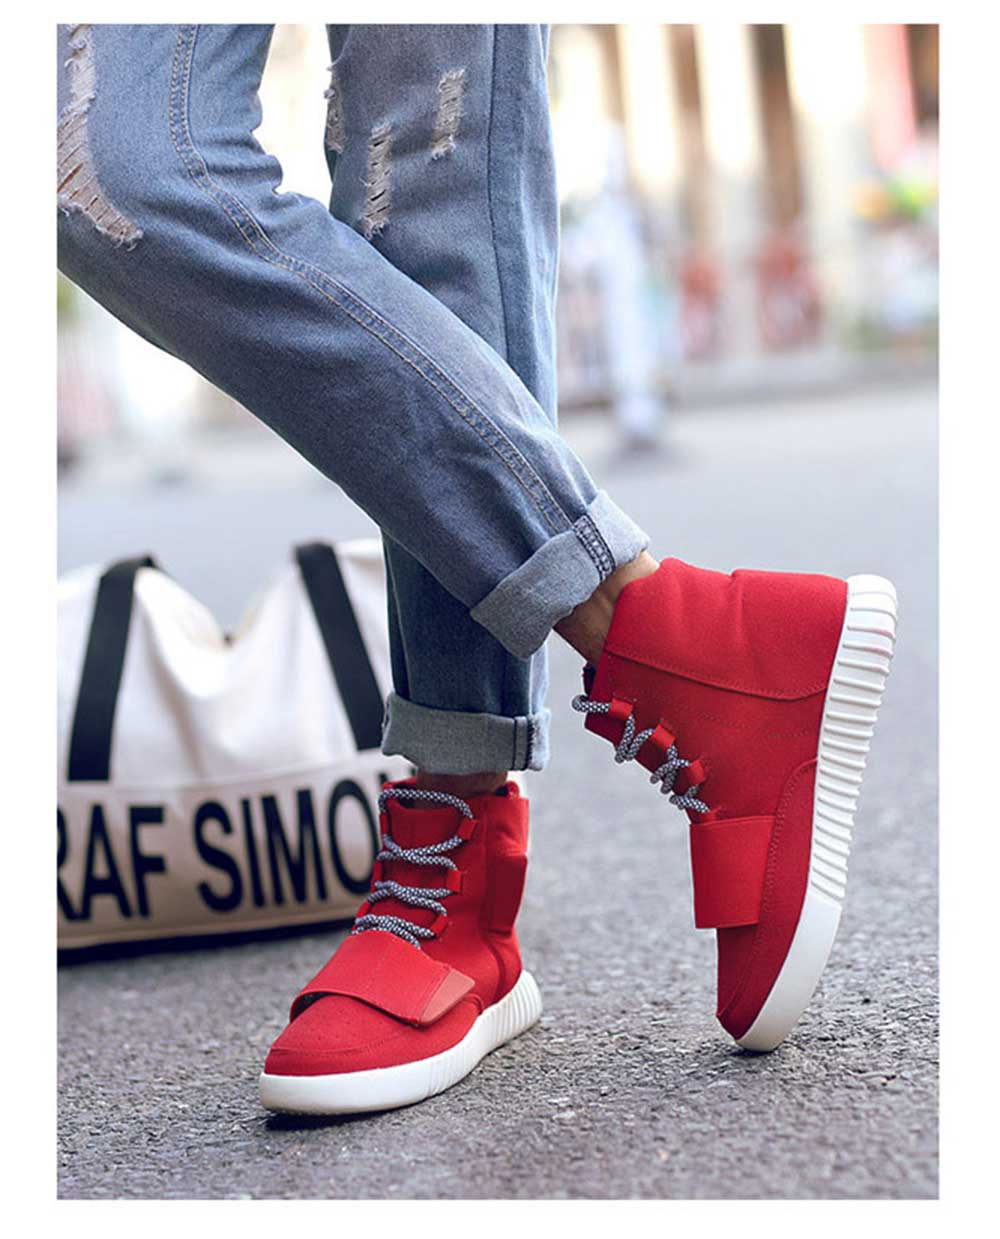 Fashionable Solid Color Magic Tape Design Dunk High Sneakers for Men